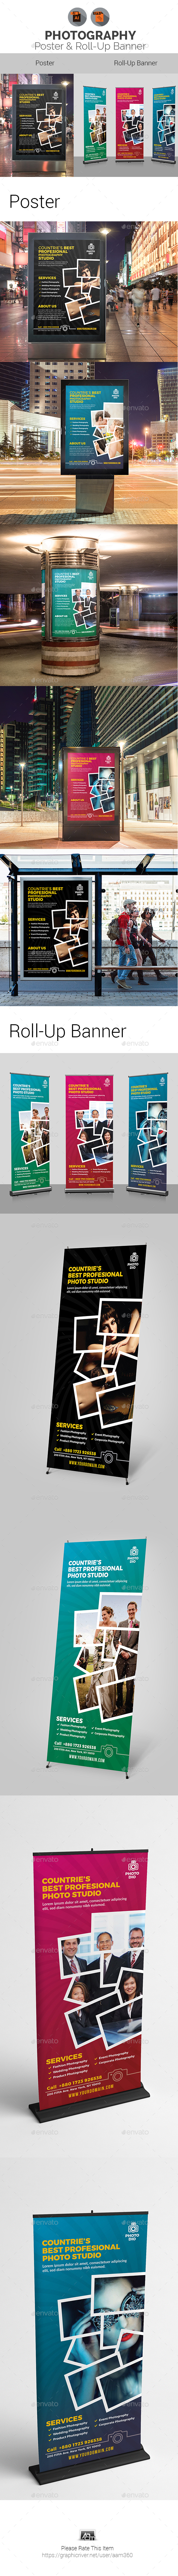 Photography Poster & Roll-Up Banner Template Bundle - Signage Print Templates